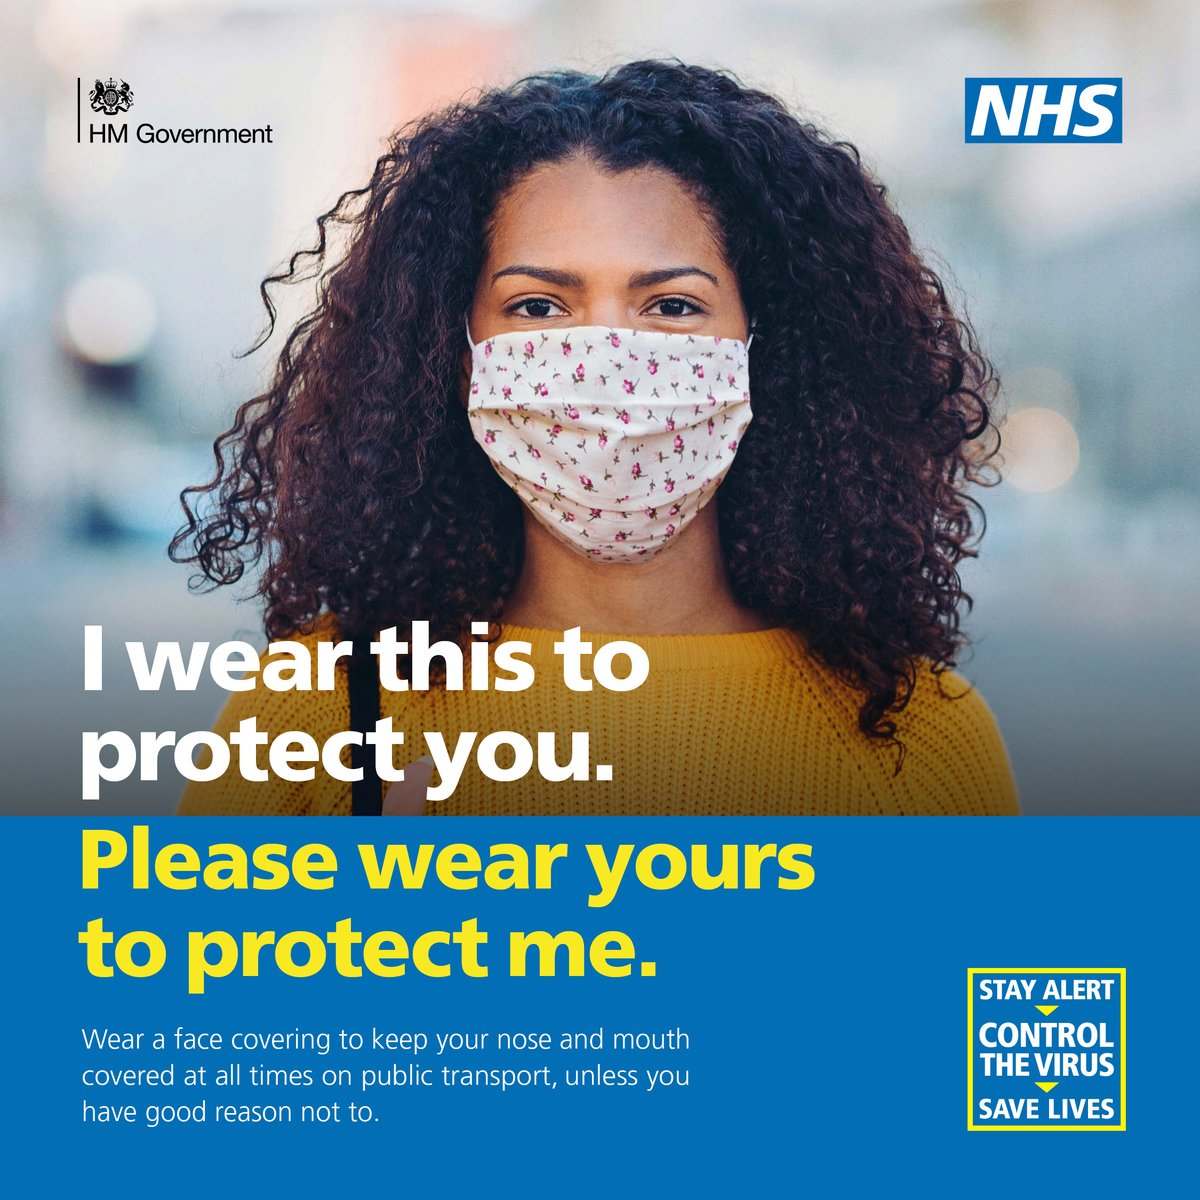 We want all patients to wear a mask at surgery